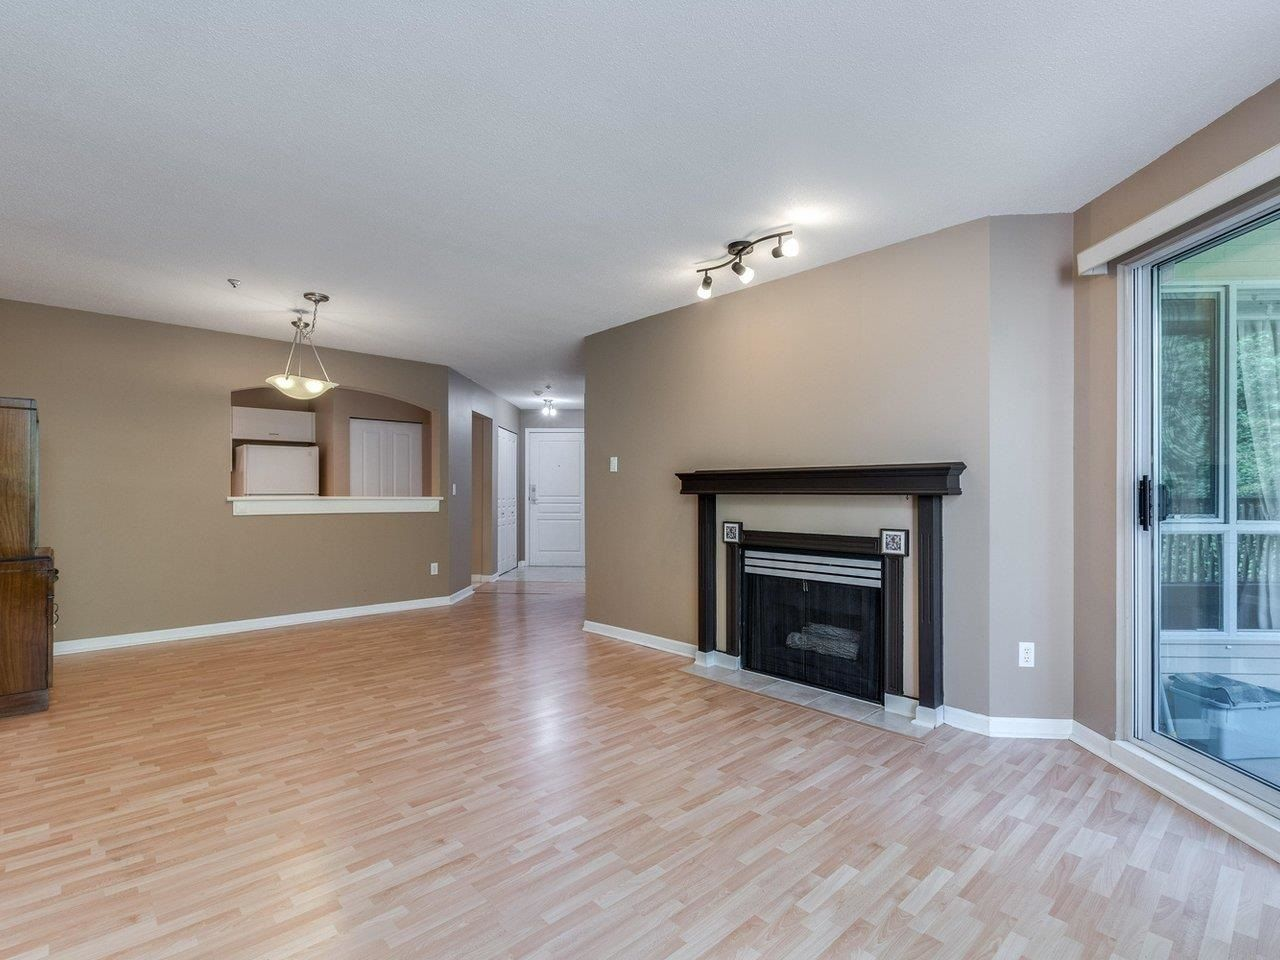 """Photo 8: Photos: 320 1252 TOWN CENTRE Boulevard in Coquitlam: Canyon Springs Condo for sale in """"The Kennedy"""" : MLS®# R2595291"""